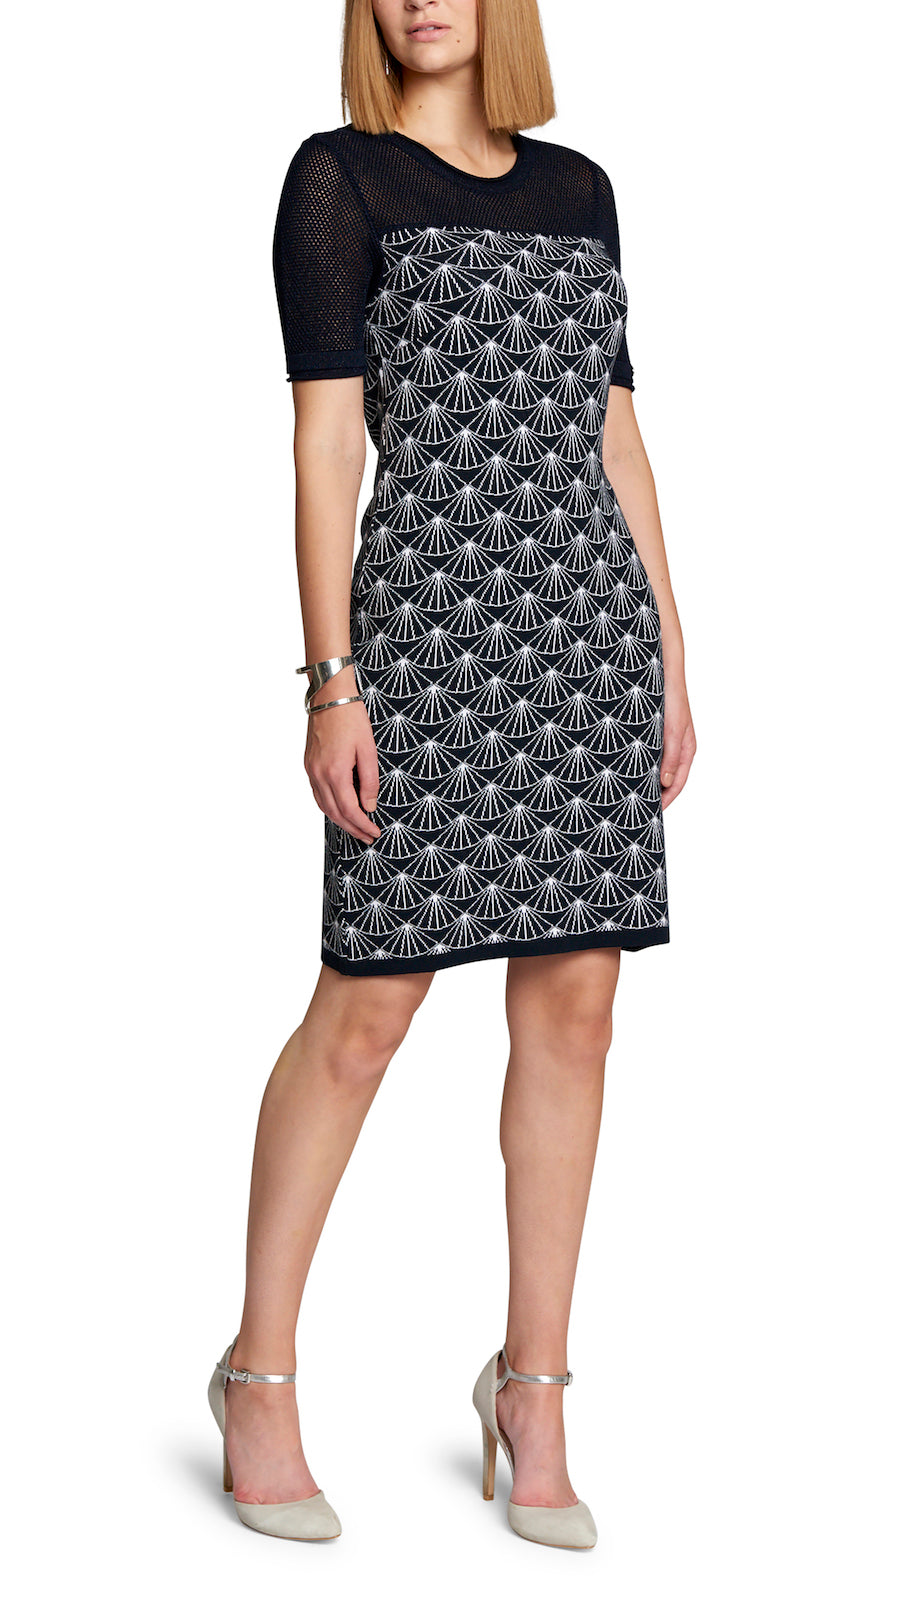 CONTEMPO Jasmine Dress, Navy/White